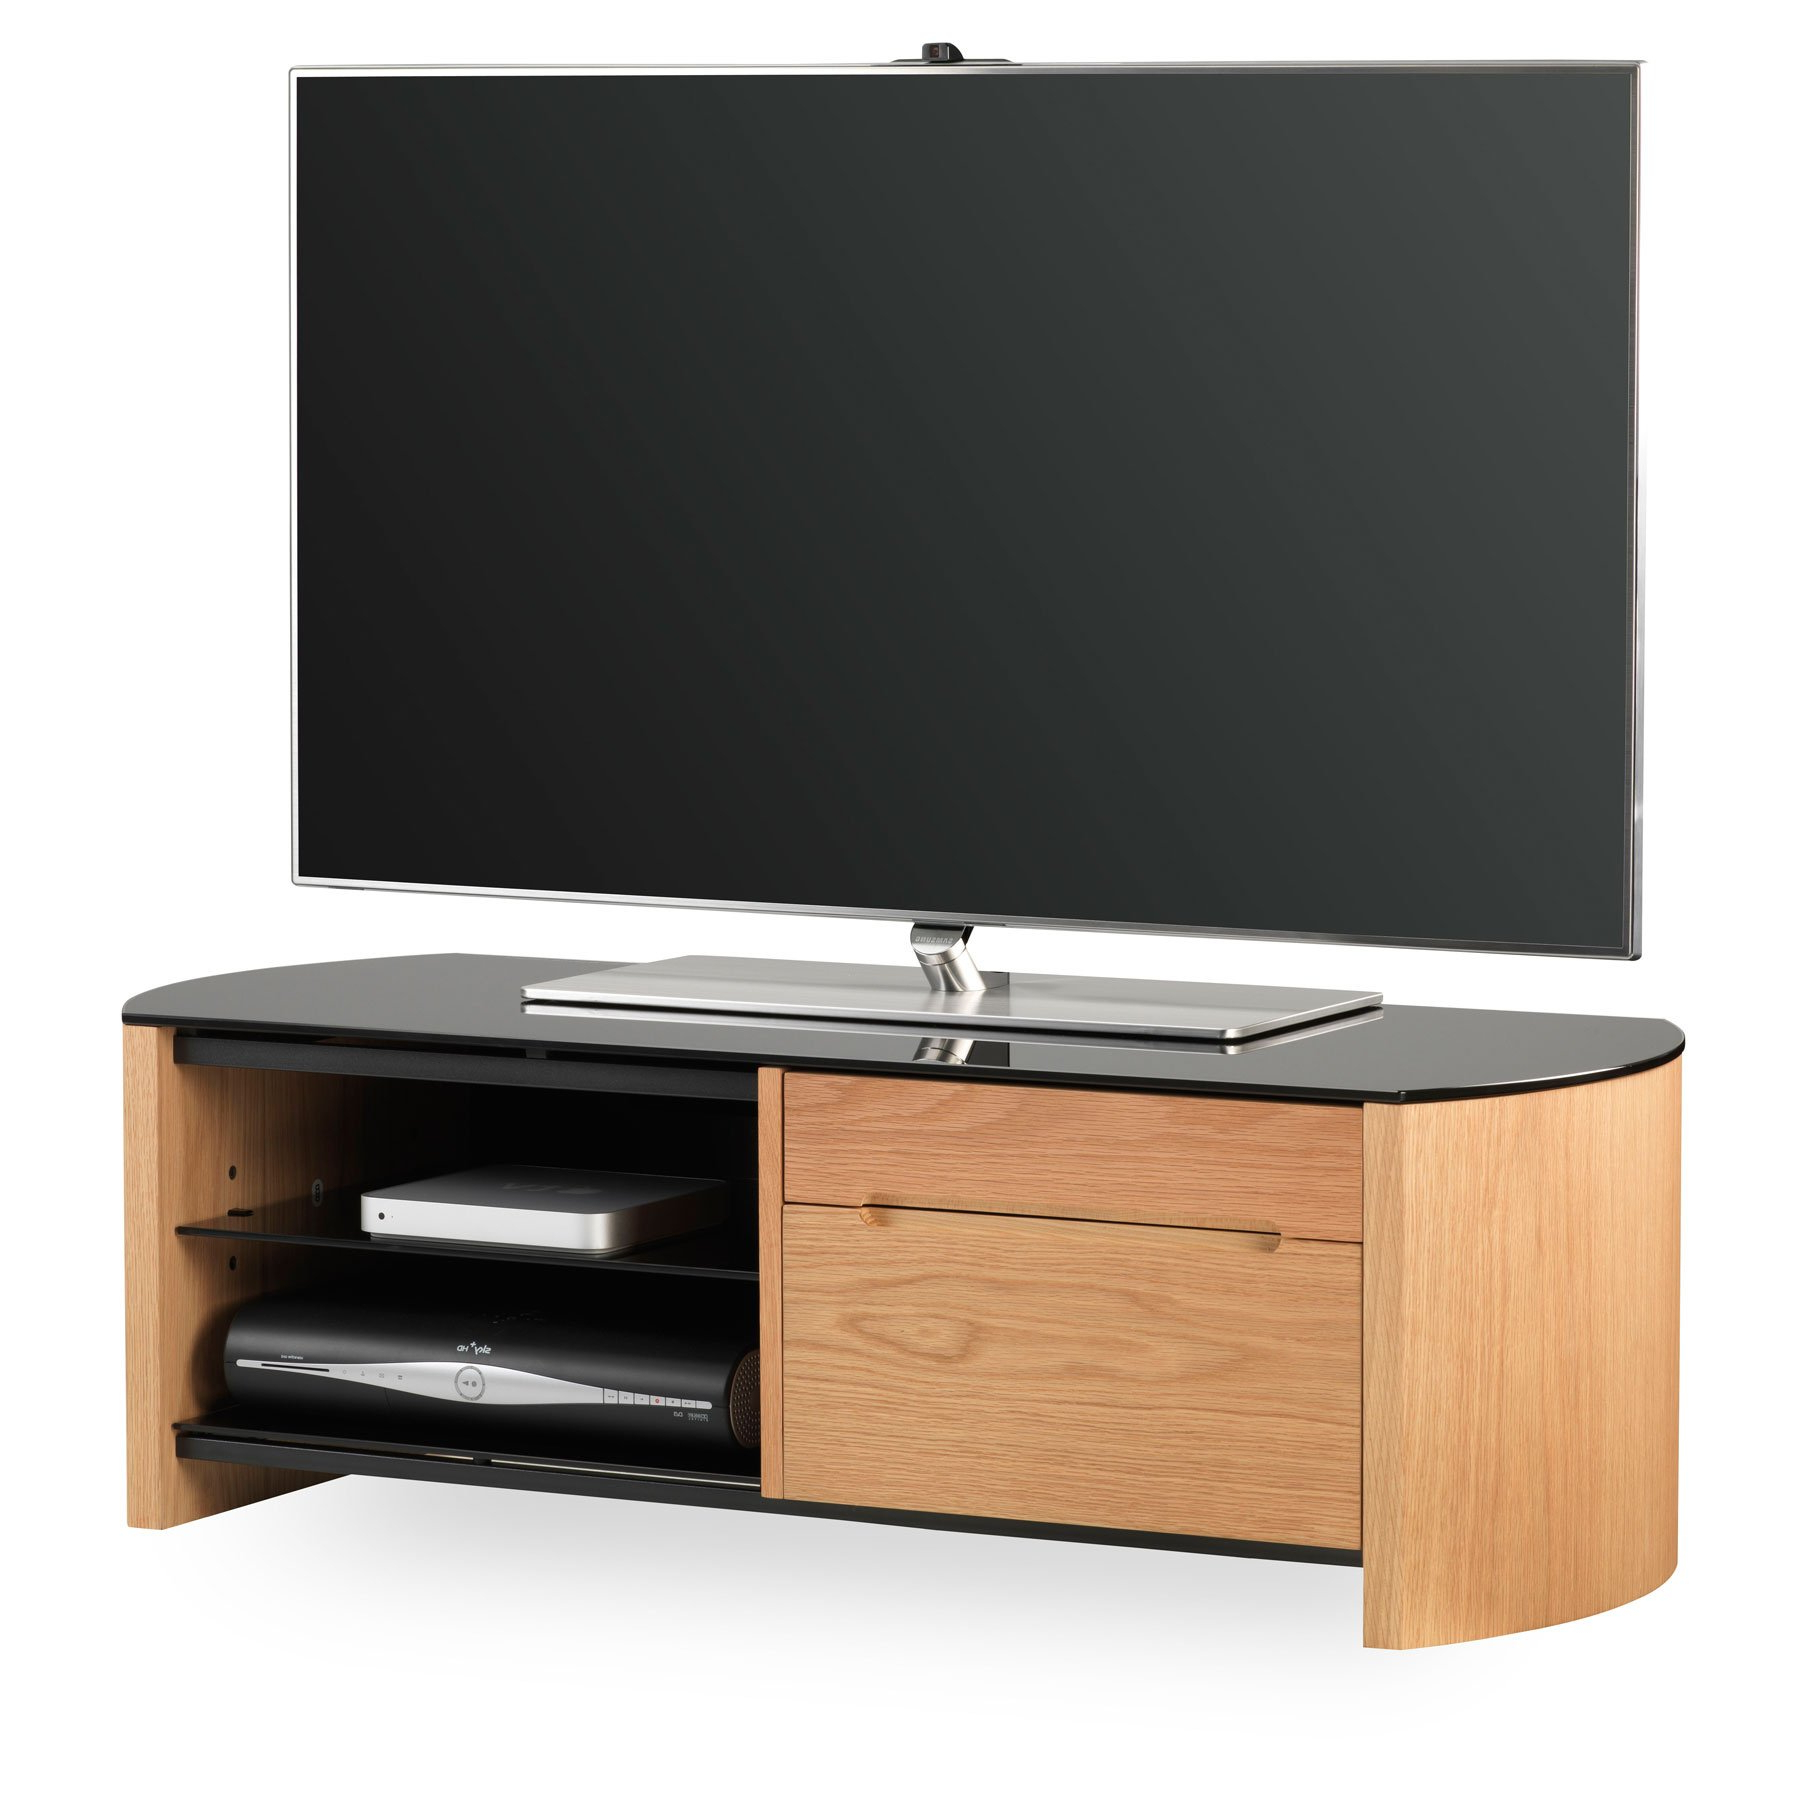 """Alphason Finewood Fw1100cb Light Oak Tv Stand For Up To 50 Intended For Leonid Tv Stands For Tvs Up To 50"""" (View 4 of 20)"""